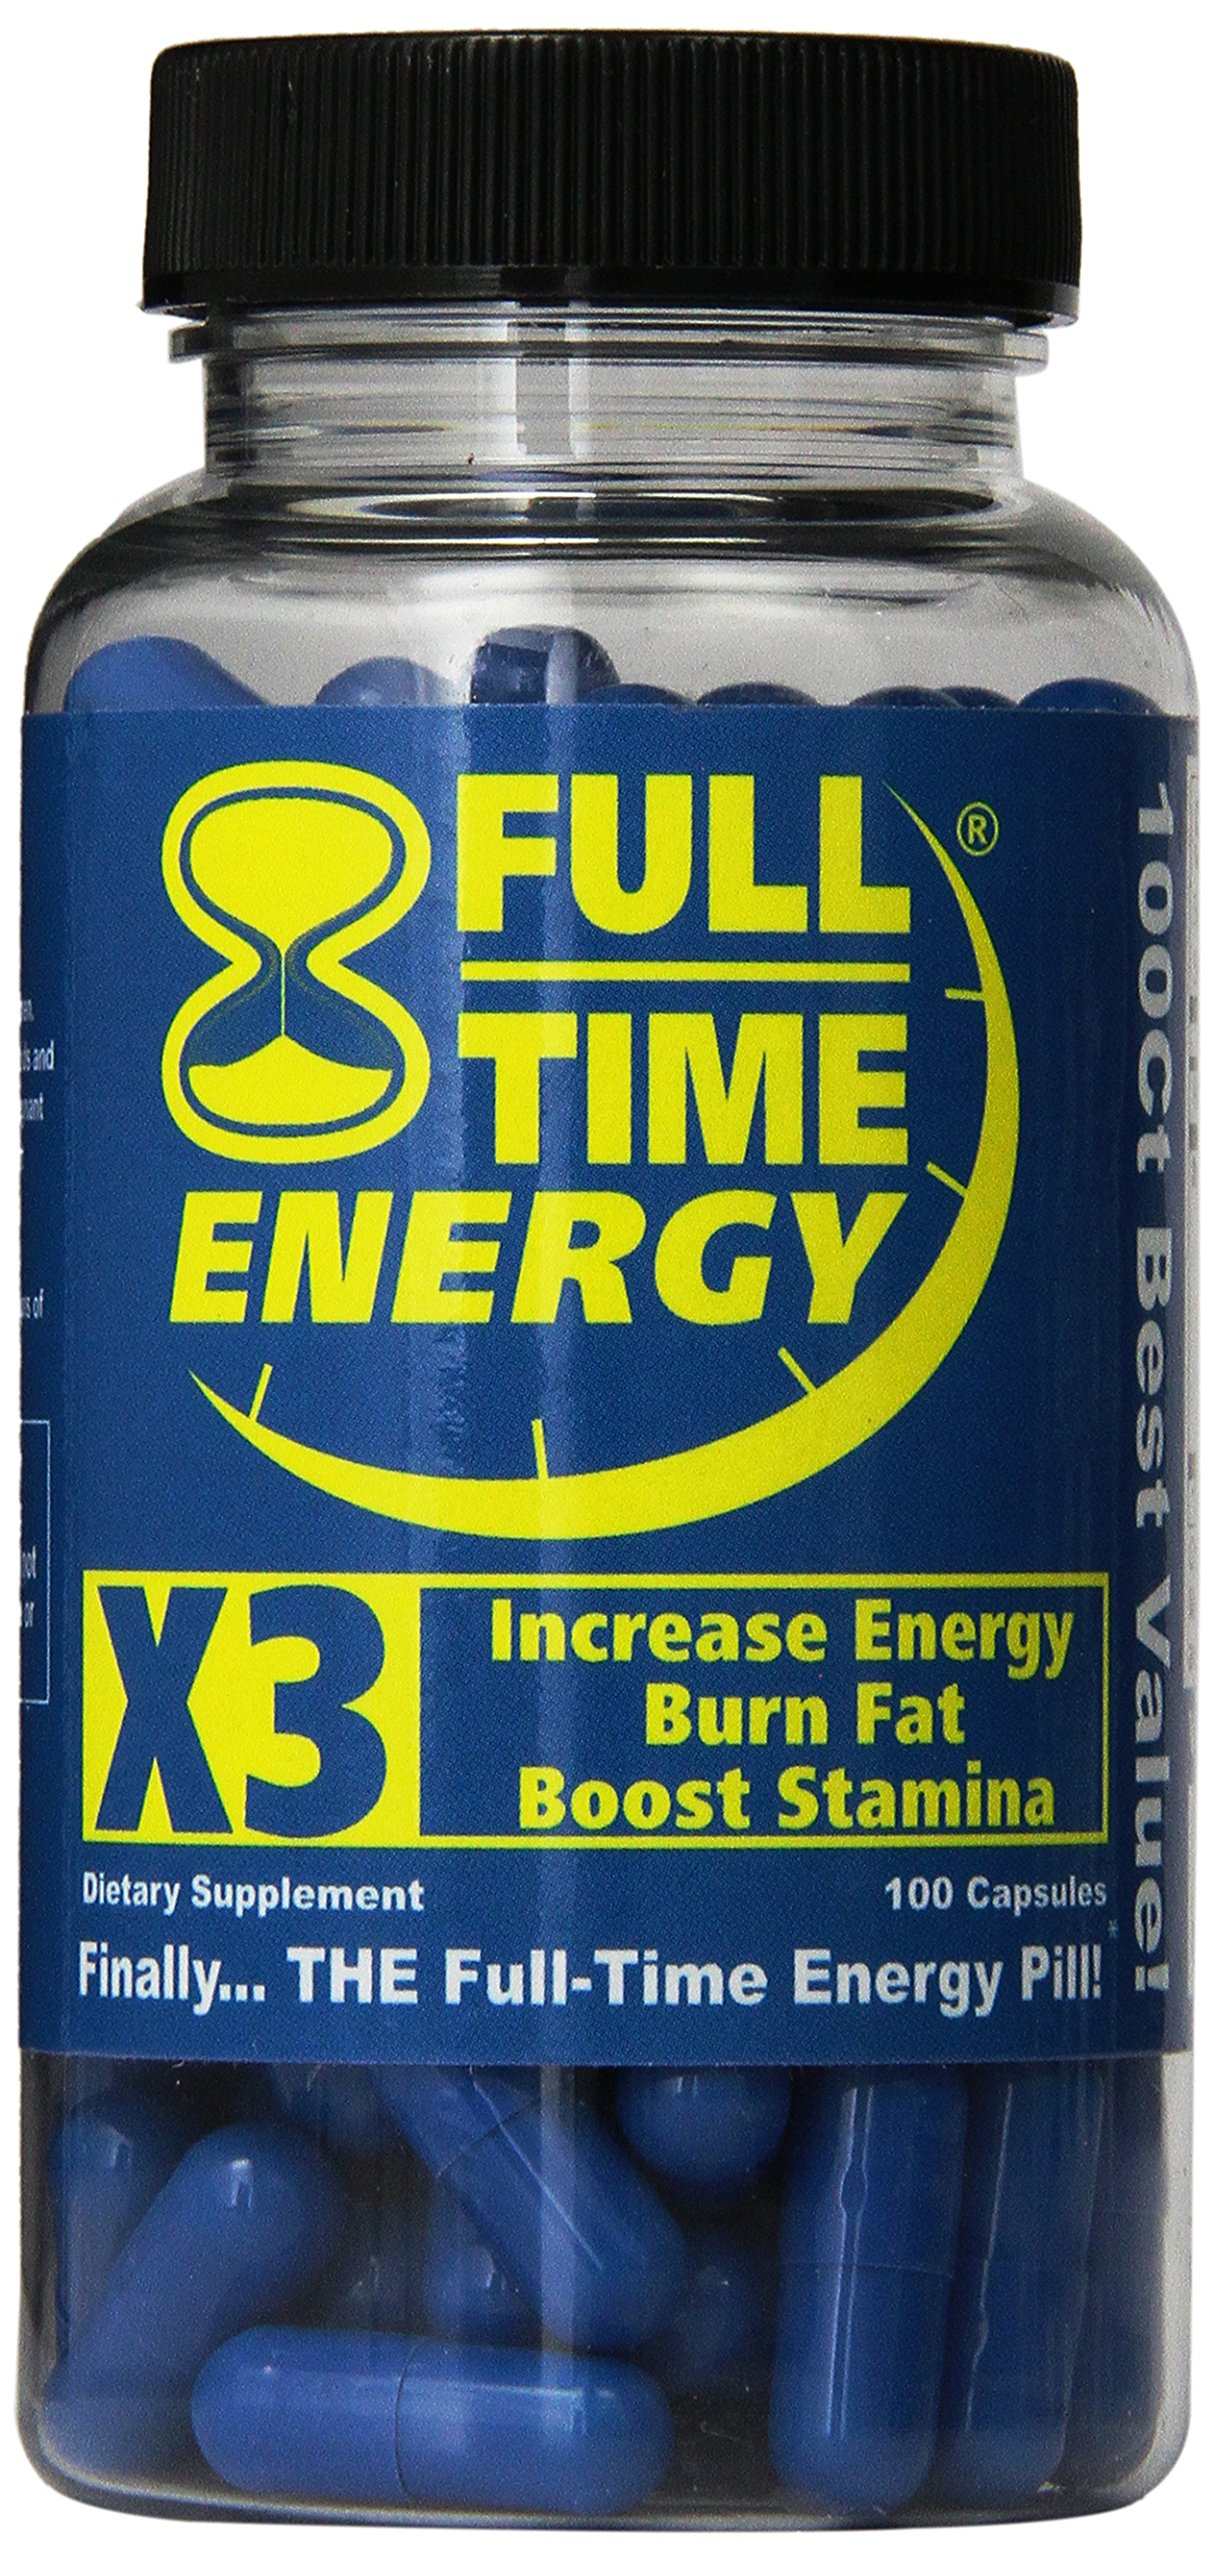 Full-Time Energy X3 - 100 Capsules - Increase Energy Burn Fat Boost Stamina - Best Natural Energy Booster Fat Burner Supplements Stamina Enhancer - Weight Loss Diet Pill Lose Weight for Men and Women by Full-Time